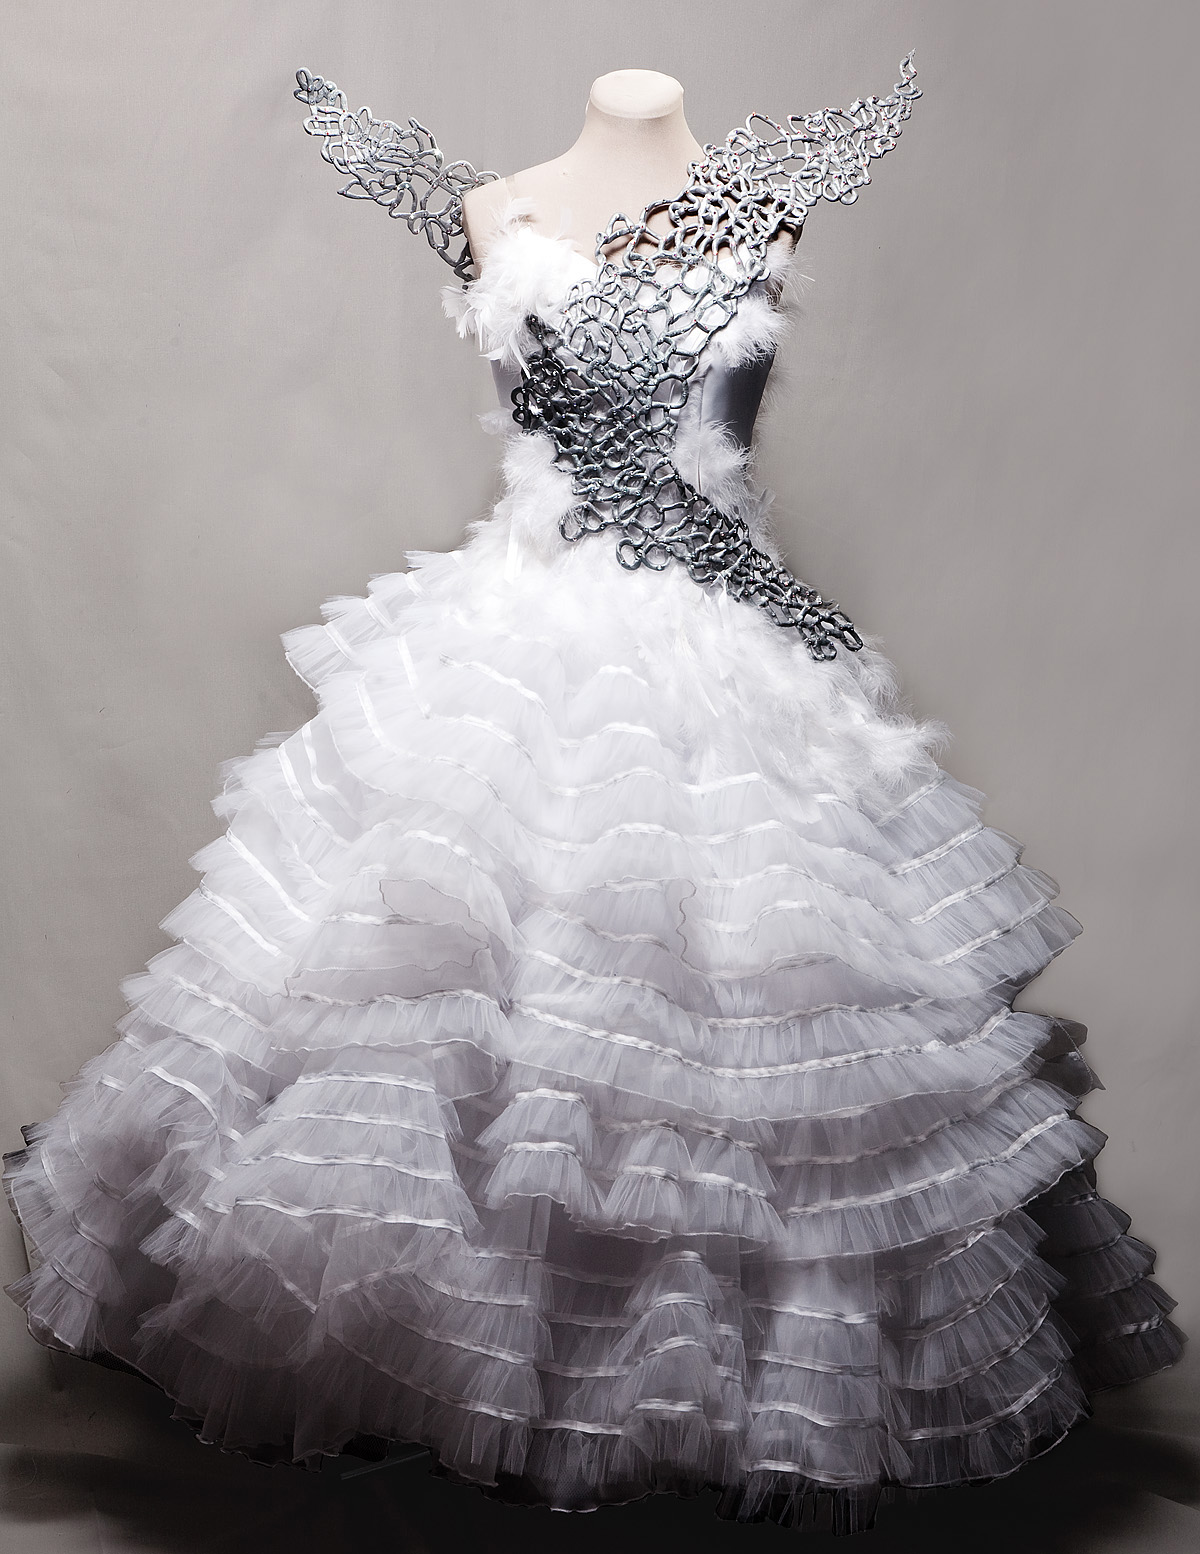 """A replica of Katniss's Wedding Gown from The Hunger Games: Catching Fire.  It has multiple billowy layers of tulle & ribbon, and silver metallic looking filigree """"wings"""" across the front and peeking out from the back."""